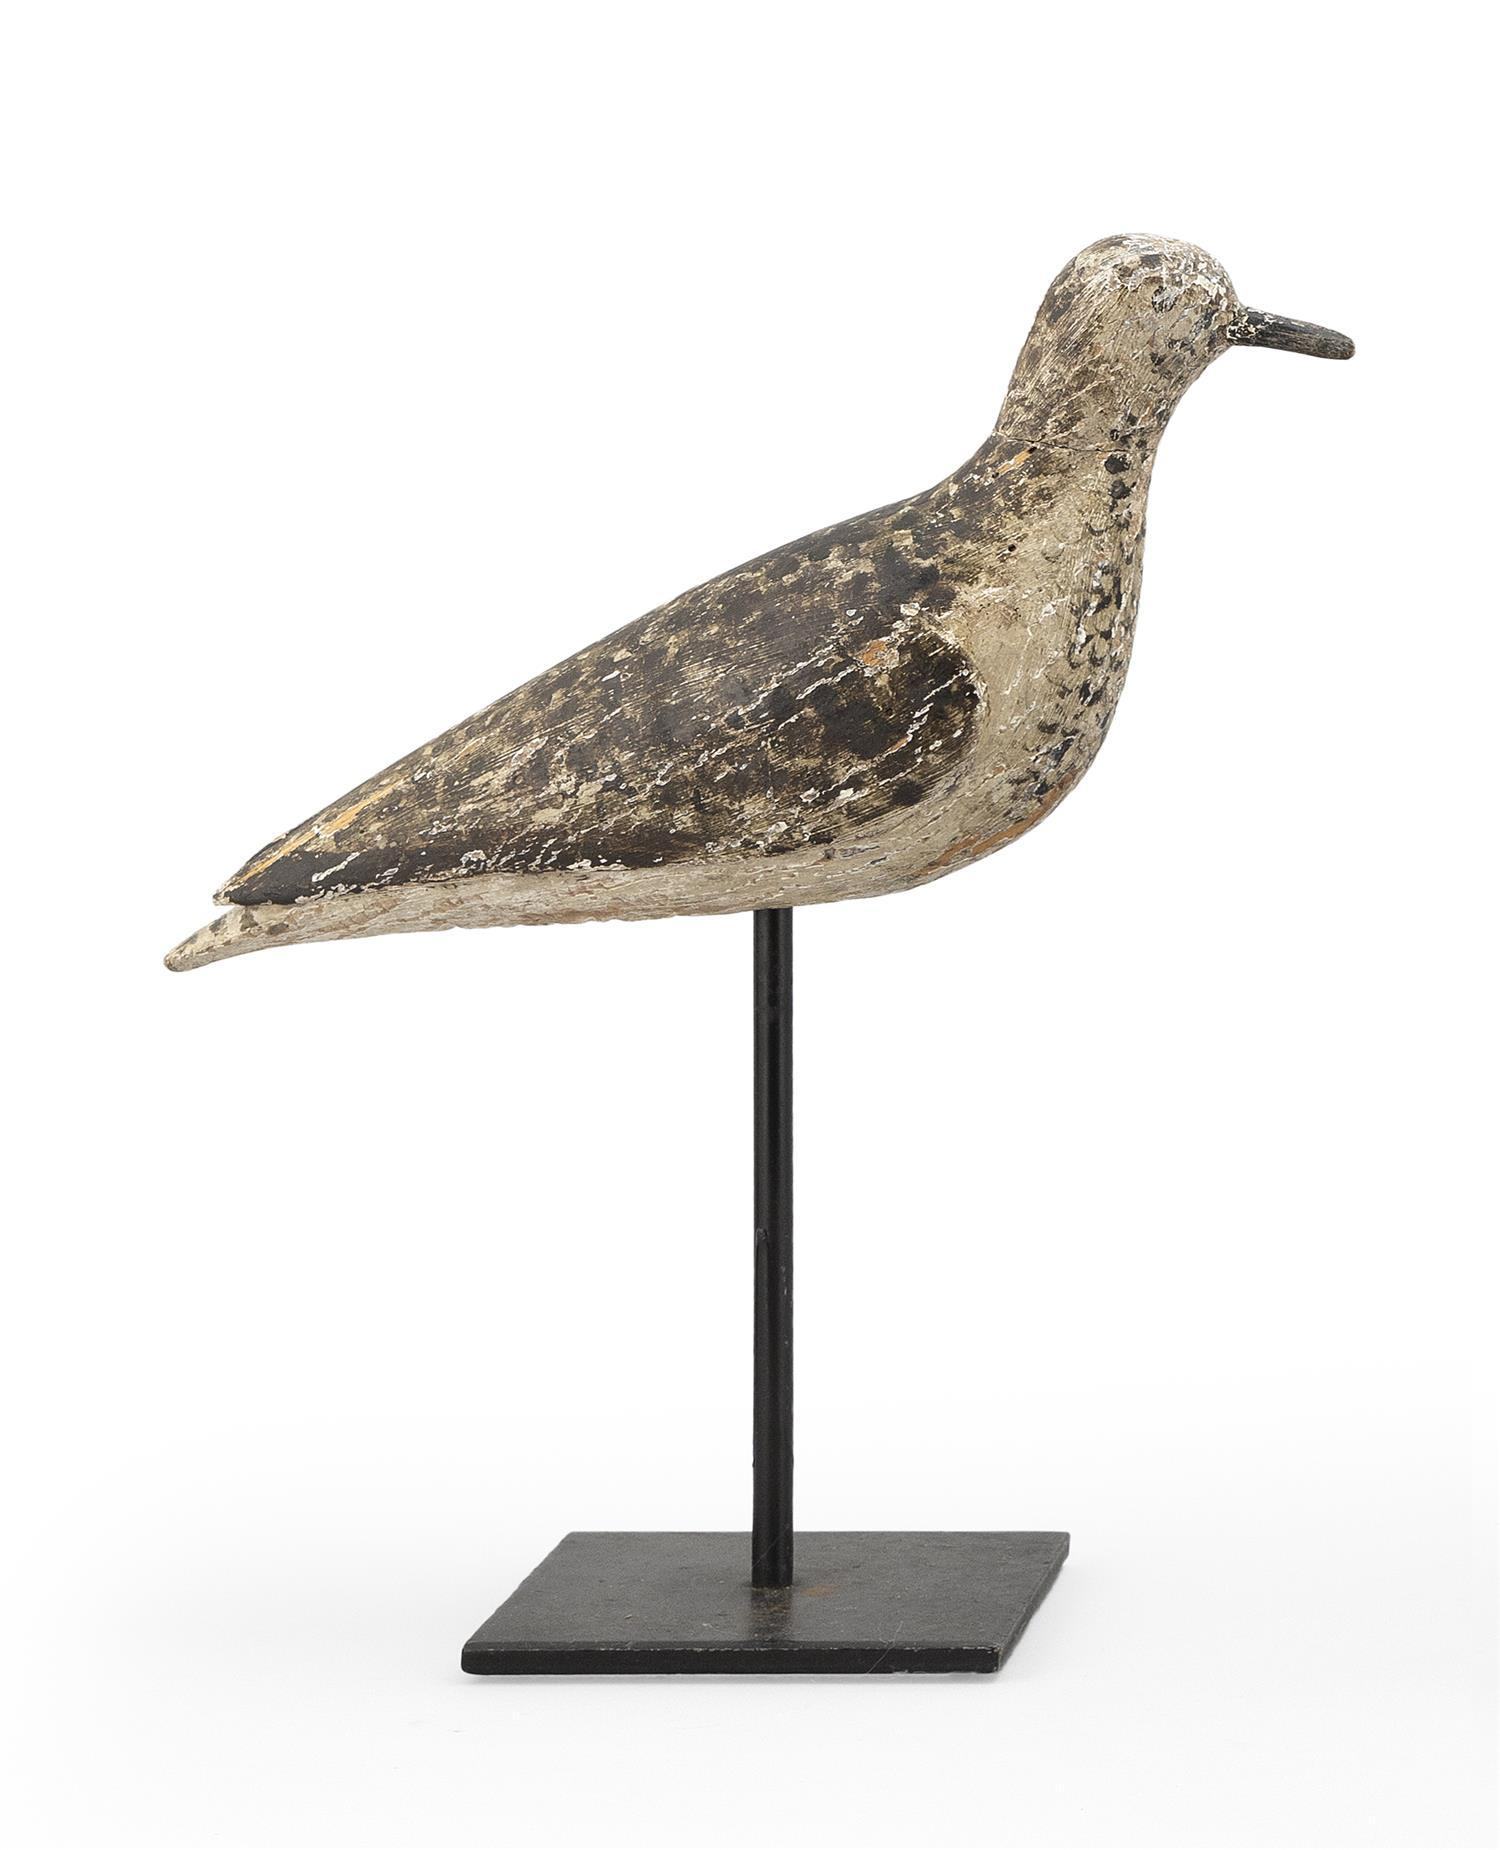 "MASSACHUSETTS GOLDEN PLOVER DECOY Maker unknown. Painted eyes. Carved wing detail. Length 11"". Ex-Collection: Hillman."